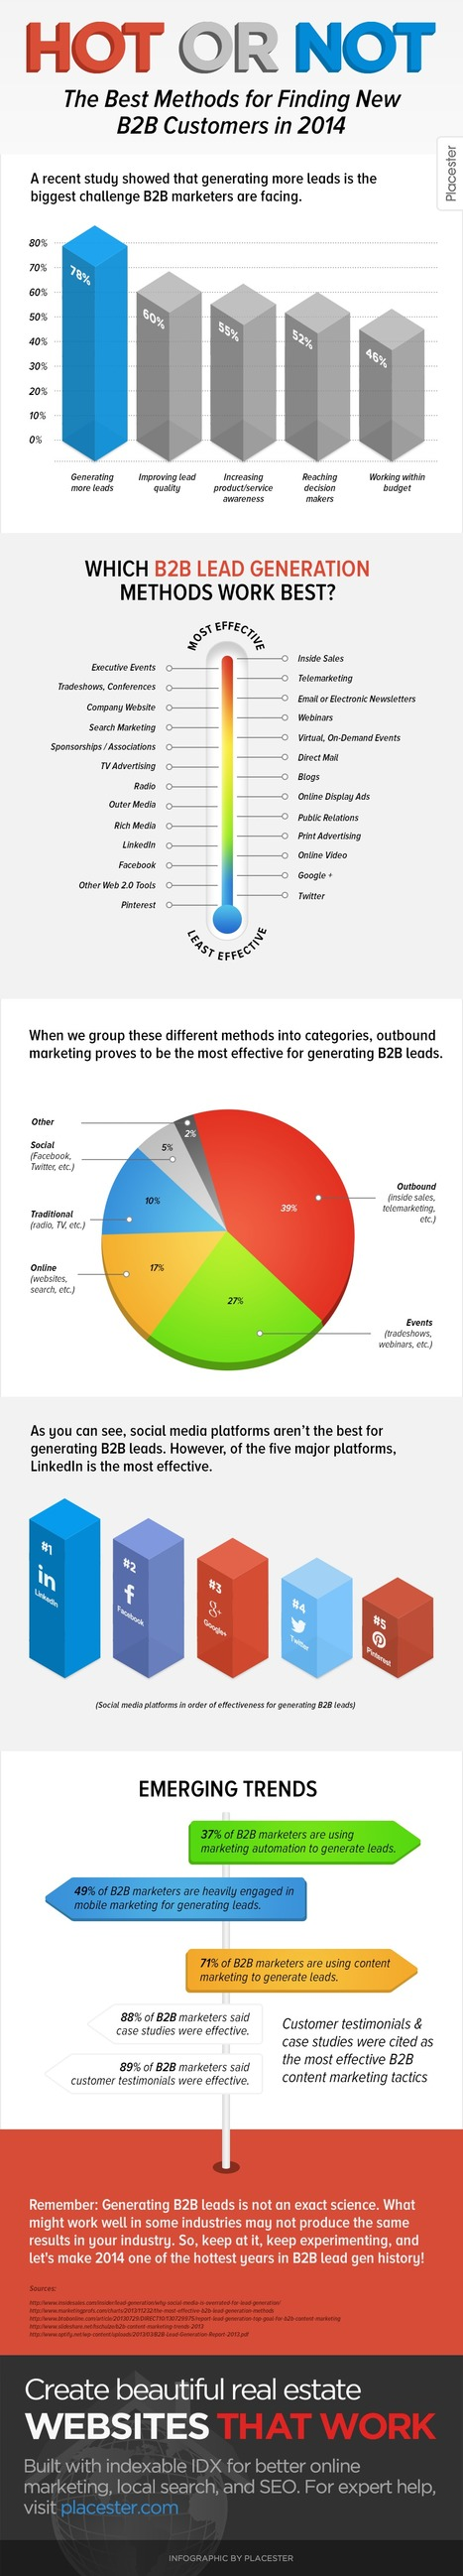 The Best Ways To Find B2B Customers In 2014 (Infographic) - Business 2 Community | B2B Industry Uses Social | Scoop.it